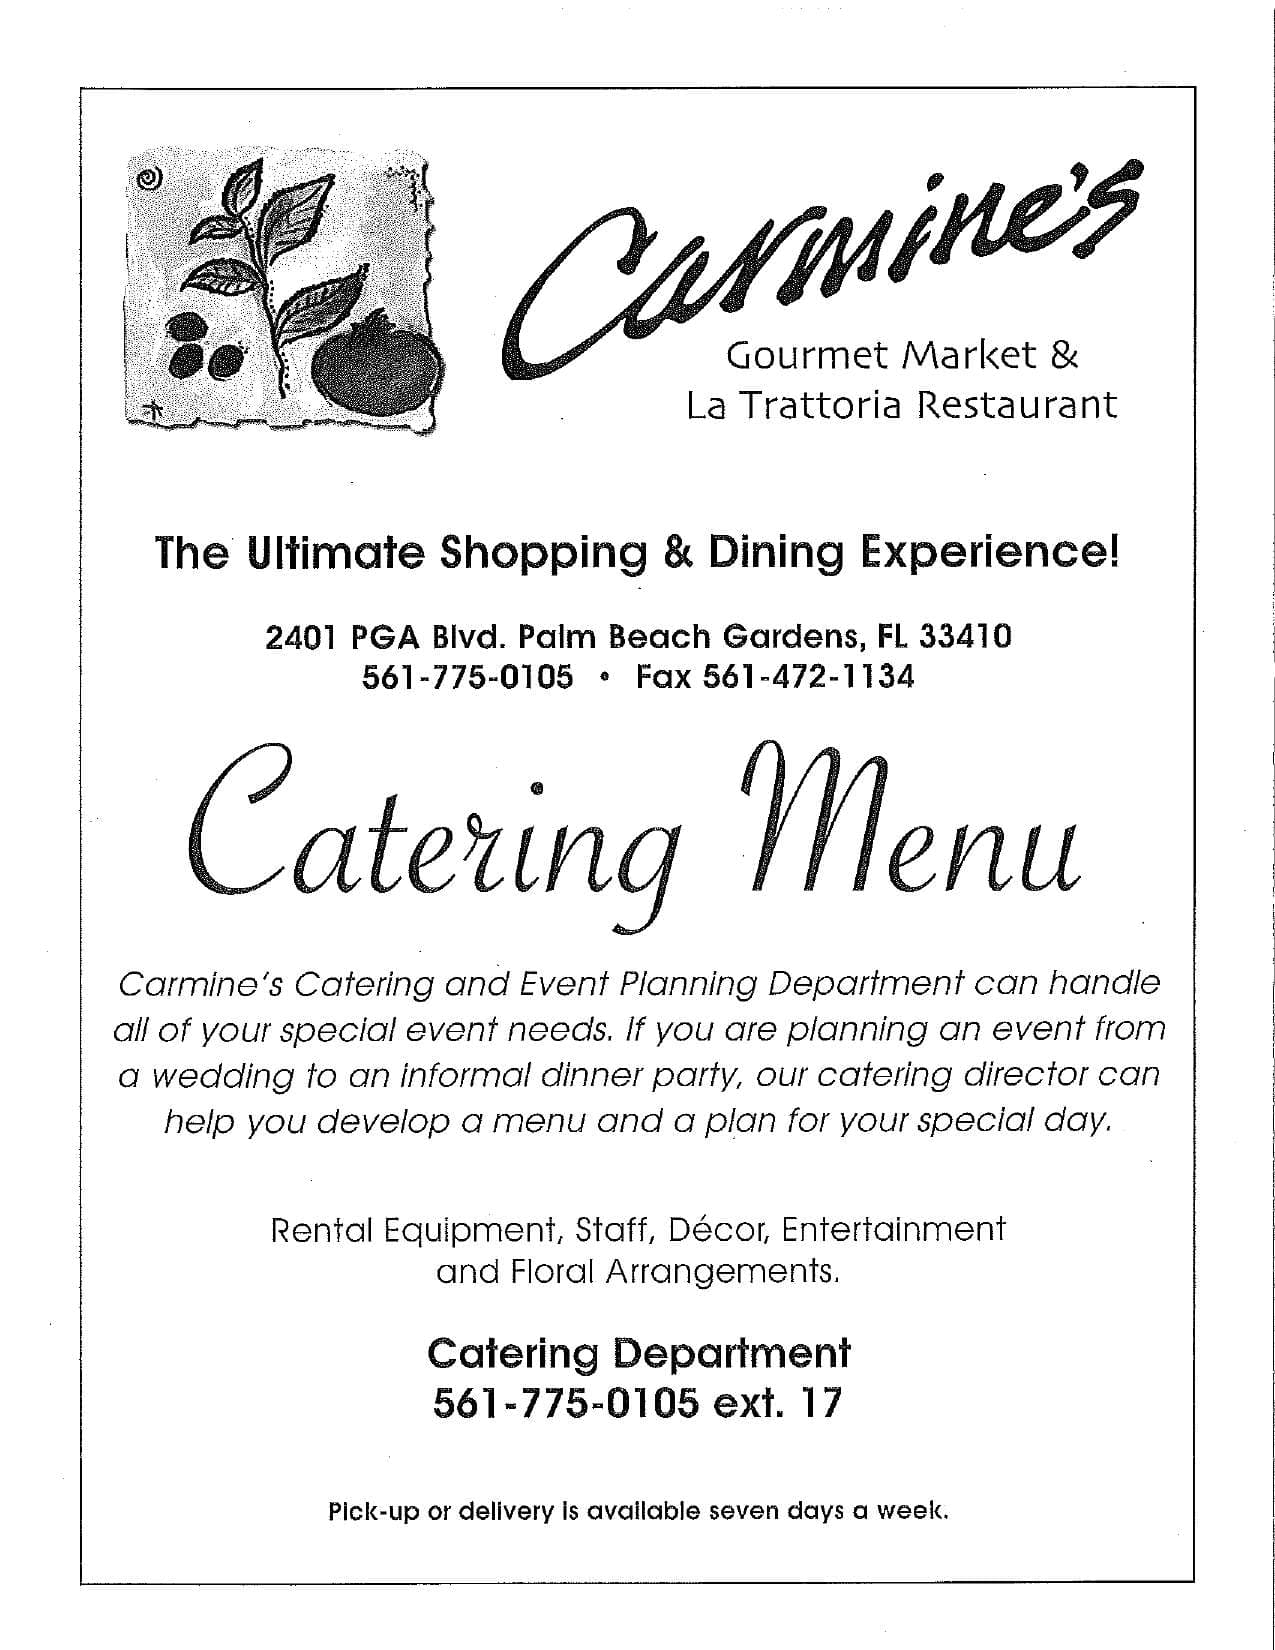 ed09f490b3a09c7cd5732cfb8b3a4366 - Carmines Catering Menu Palm Beach Gardens